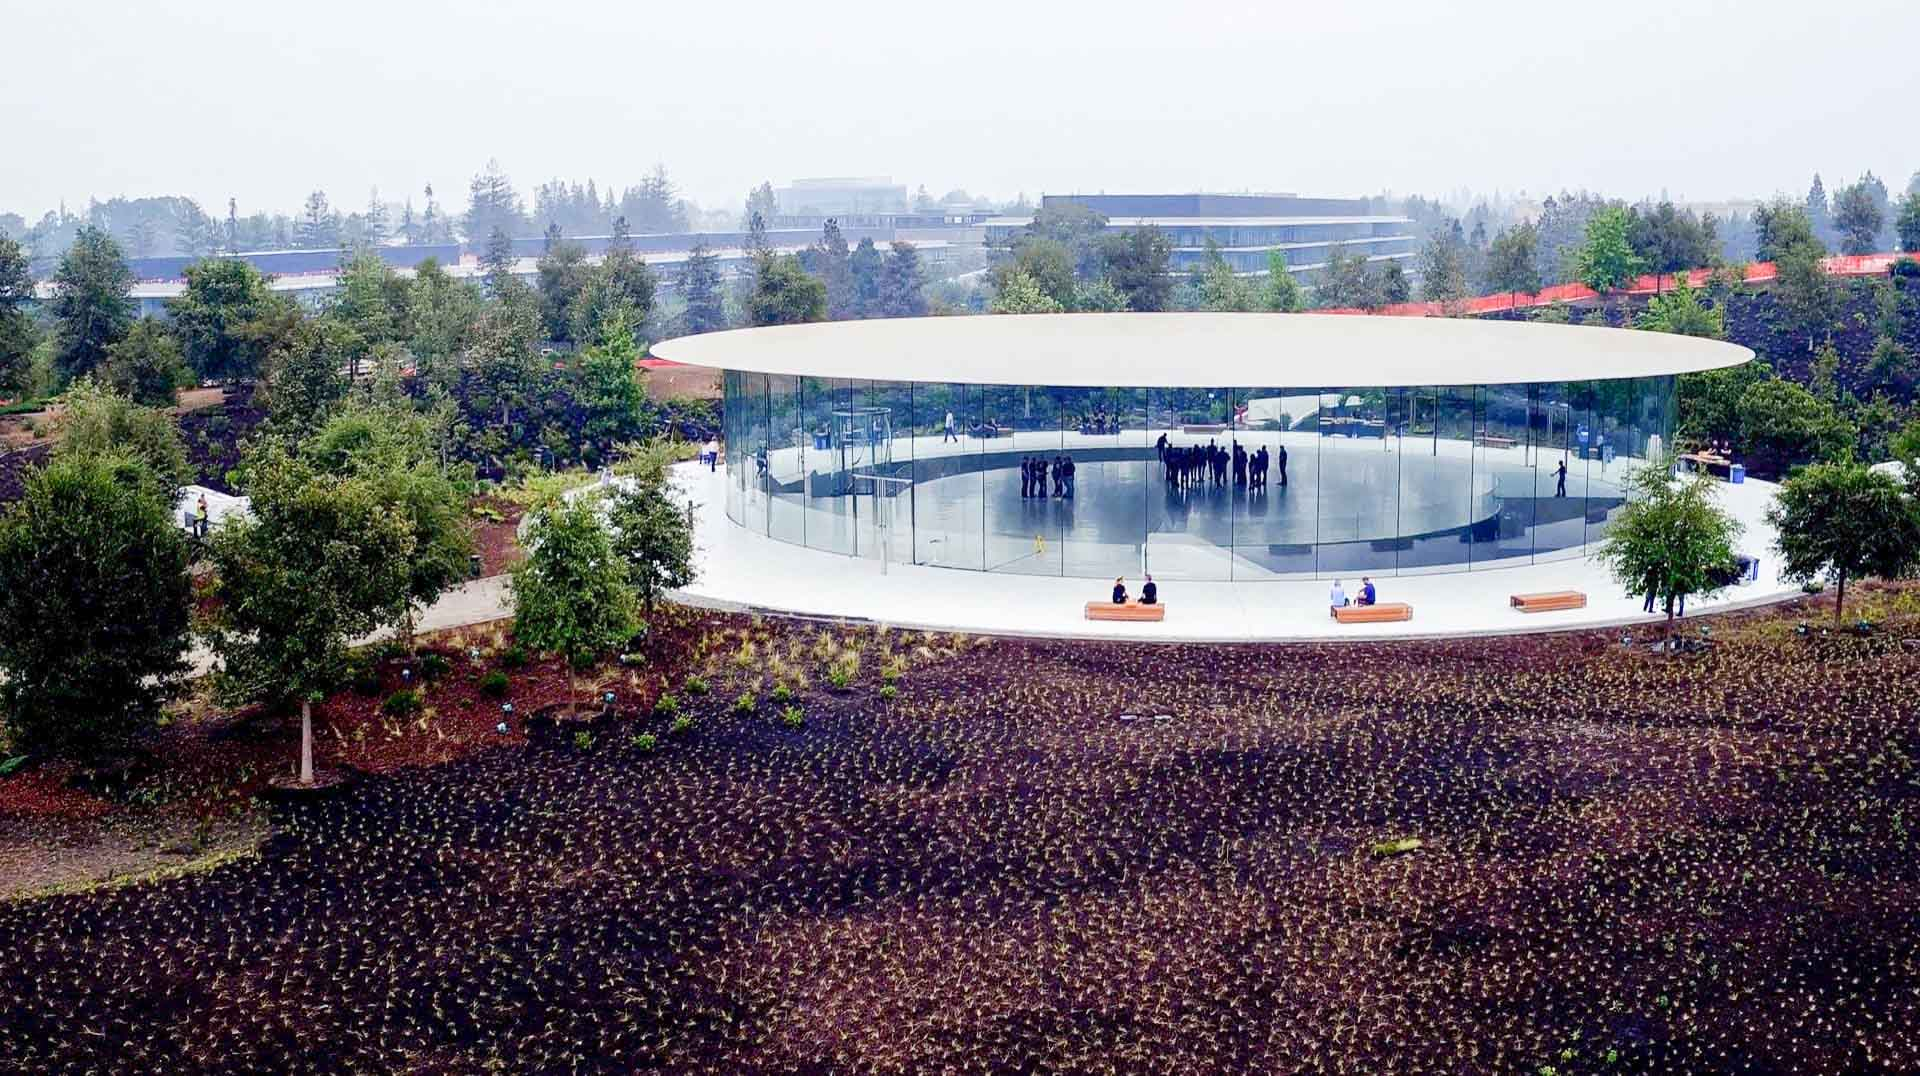 Steve Jobs Theater 5 Sep 2017